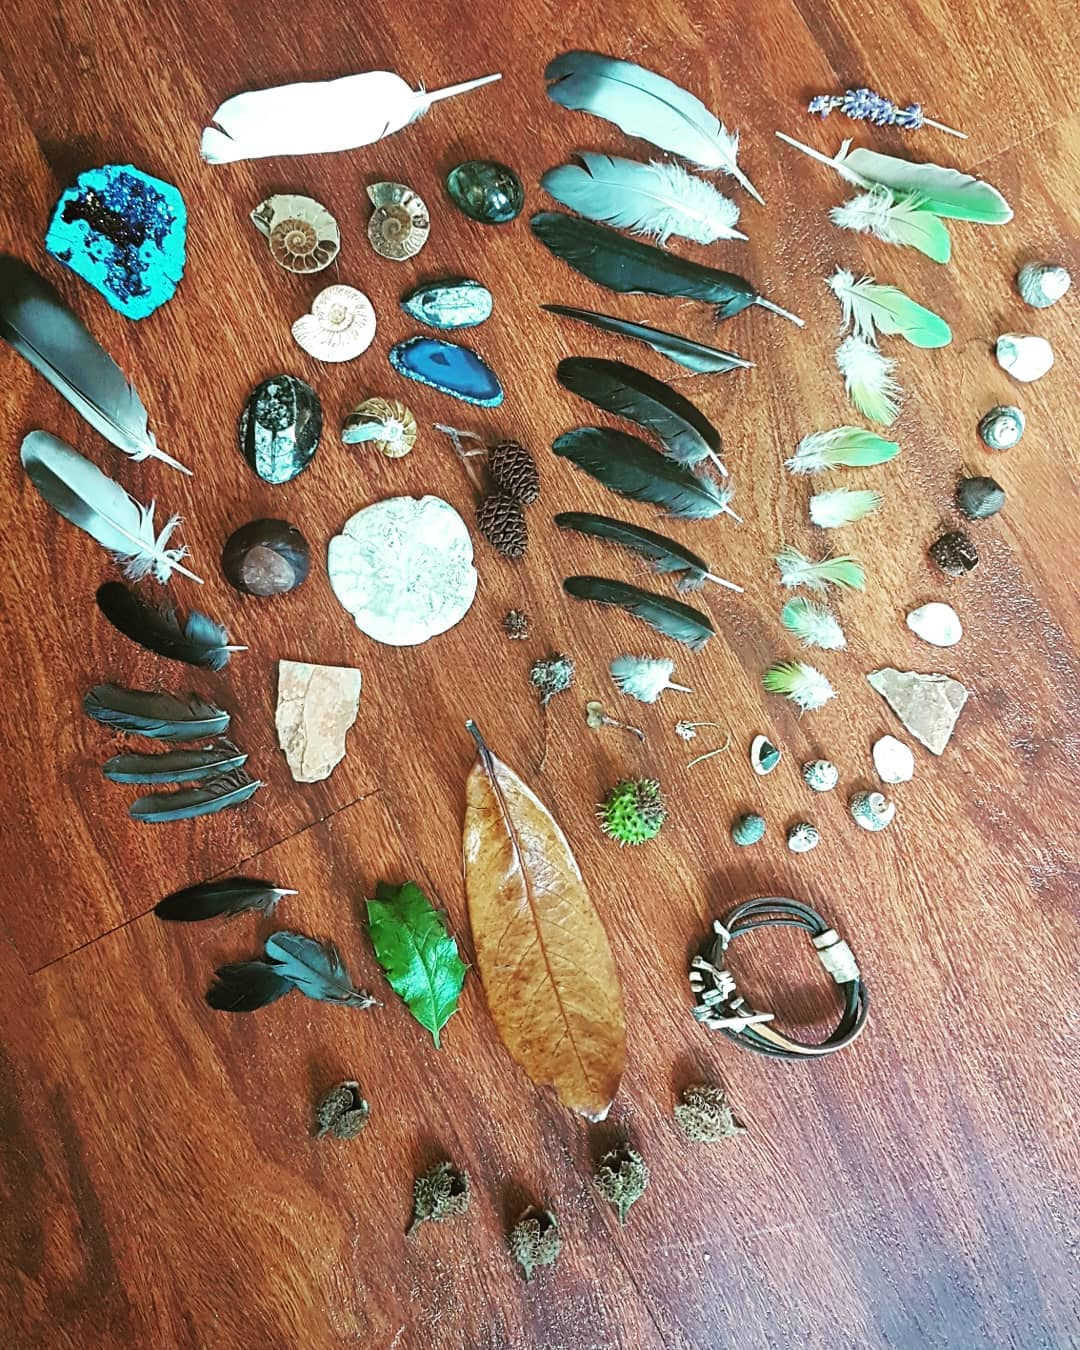 The entire collection of treasure from the trip.